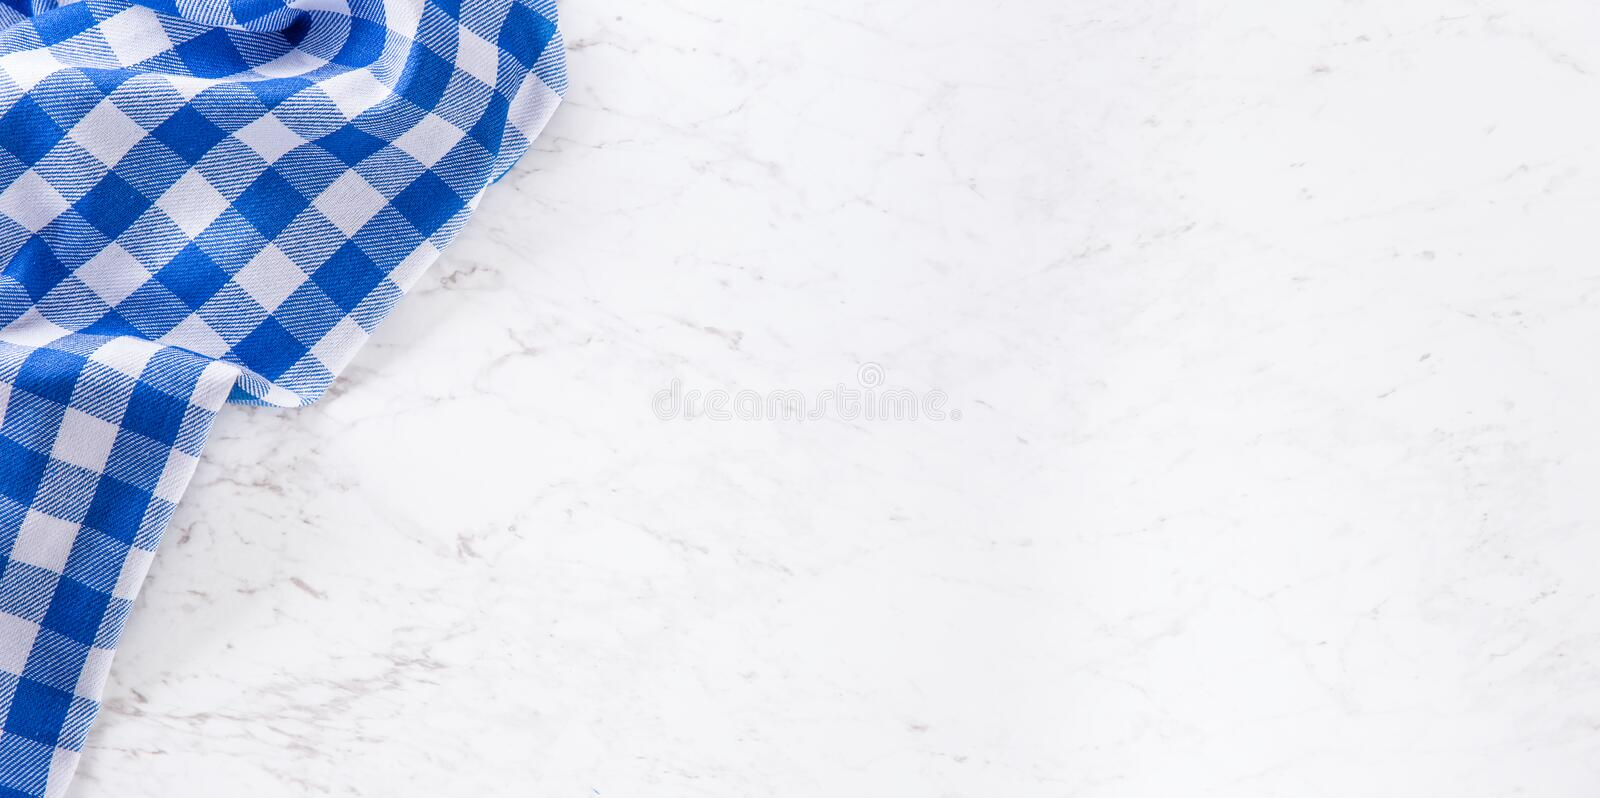 Top of view blue checkered tablecloth on white marble table.  royalty free stock photography